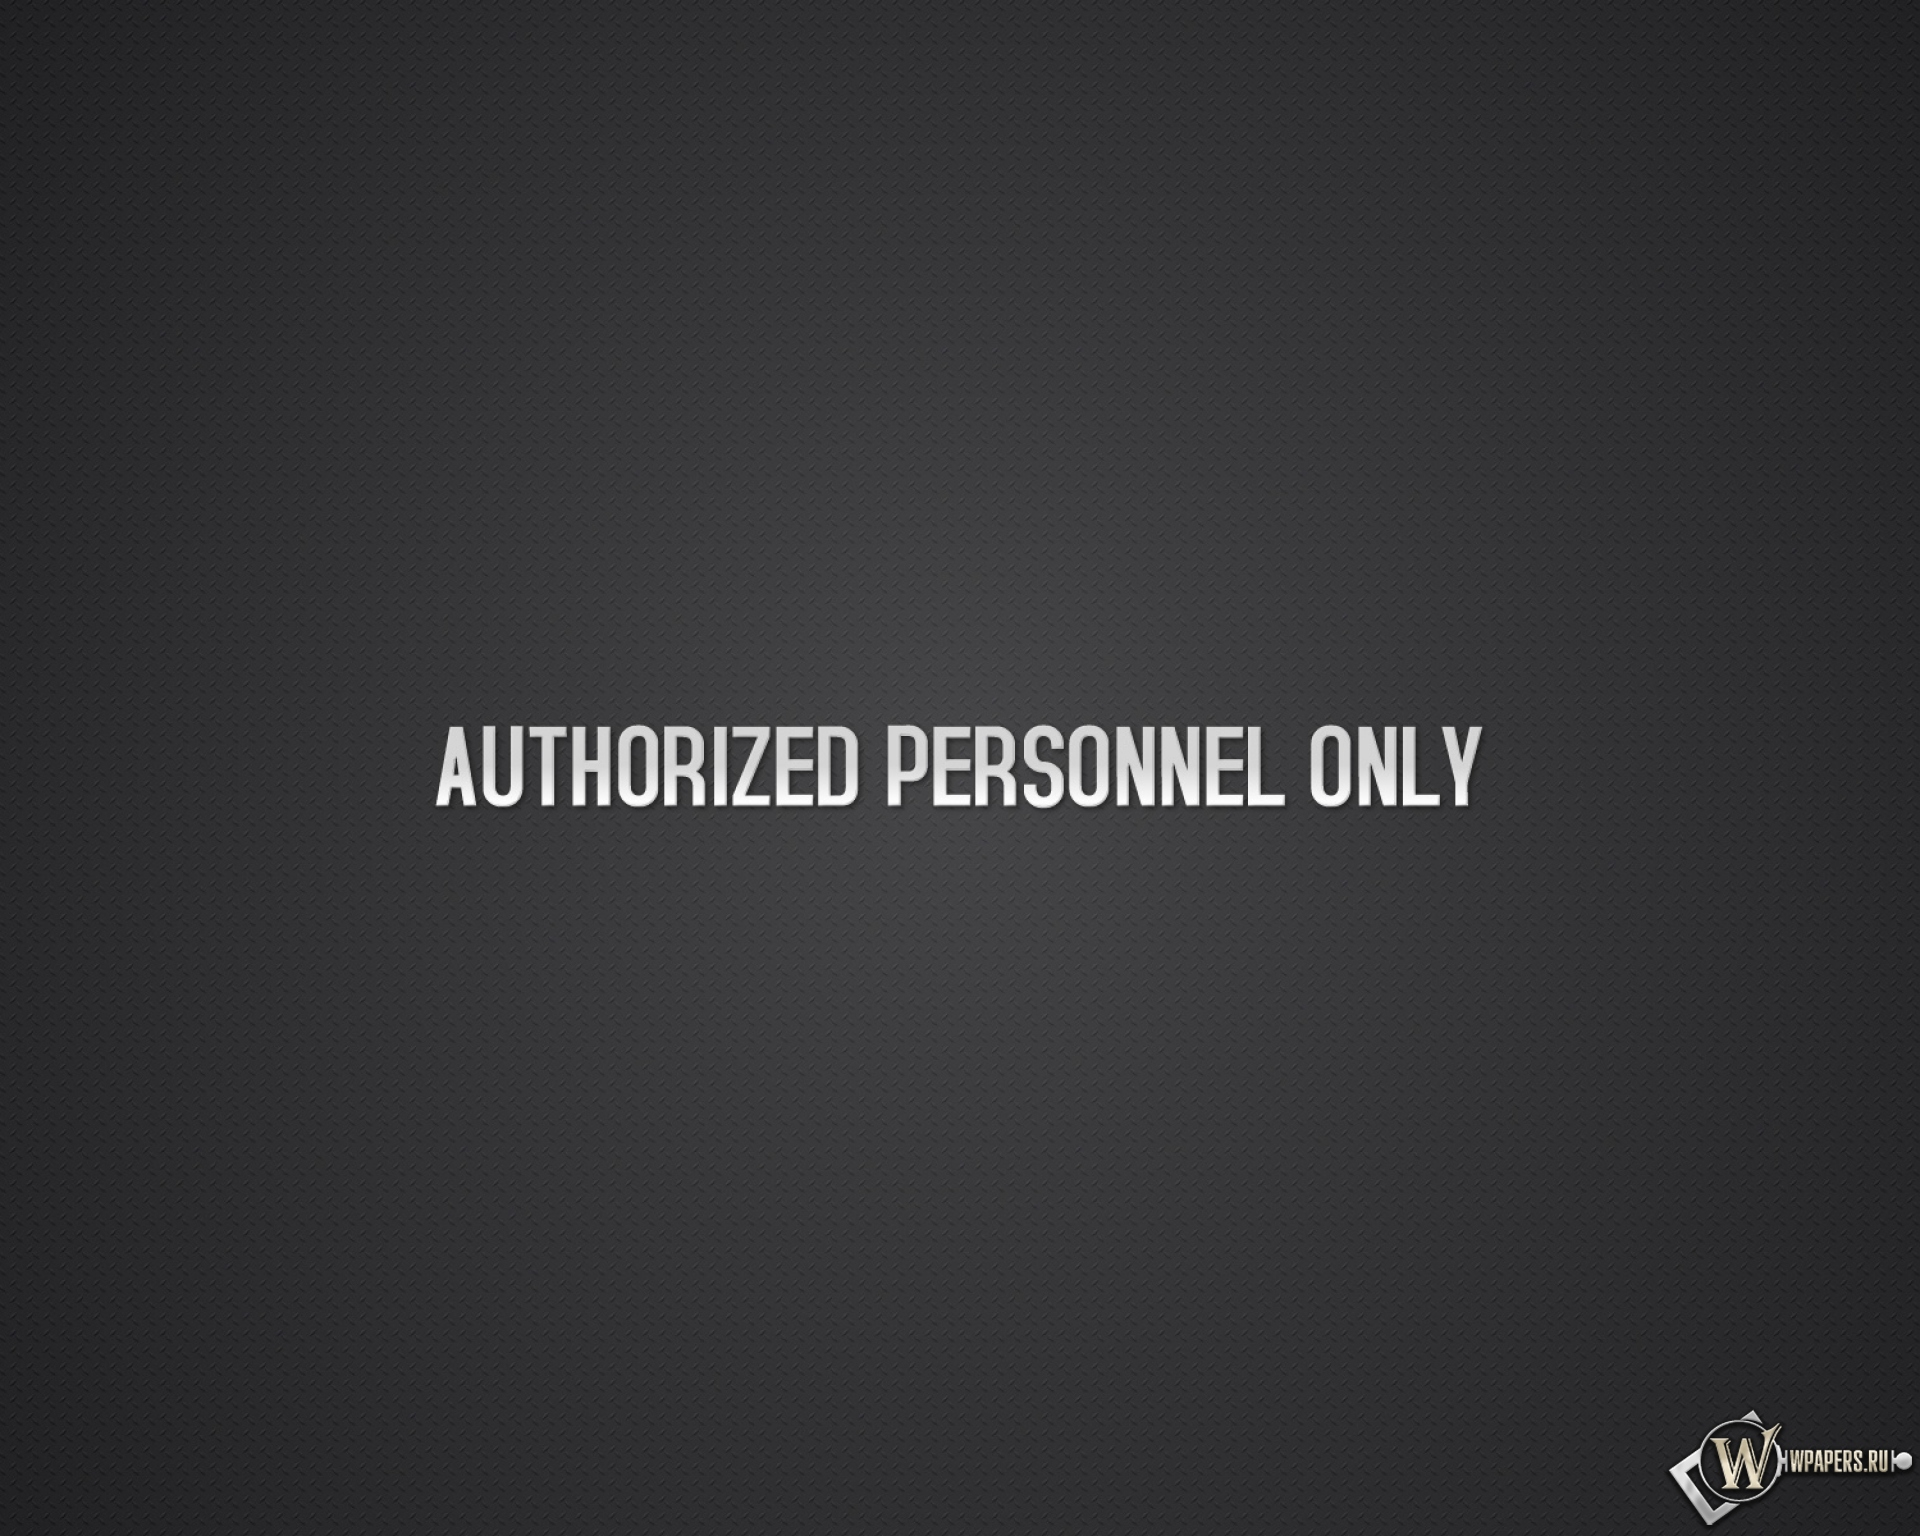 Authorized personnel only 1920x1536